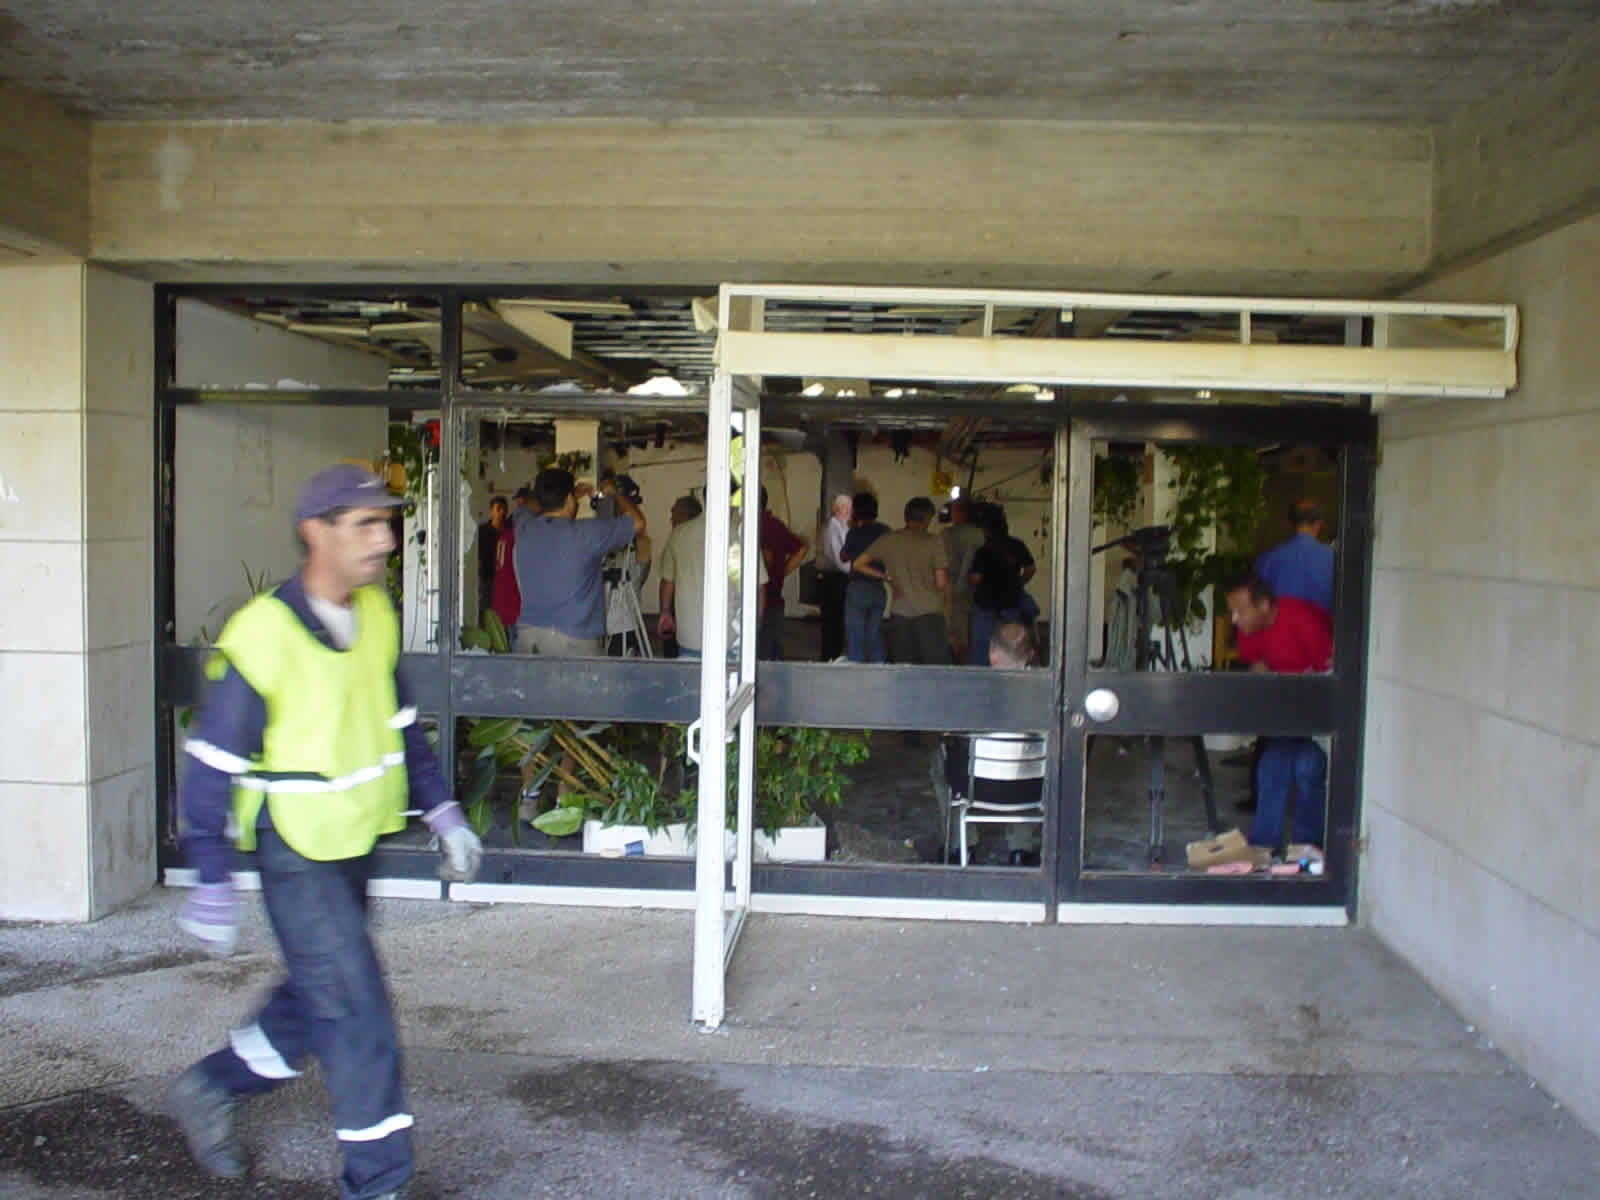 Bombing at Frank Sinatra cafateria picture